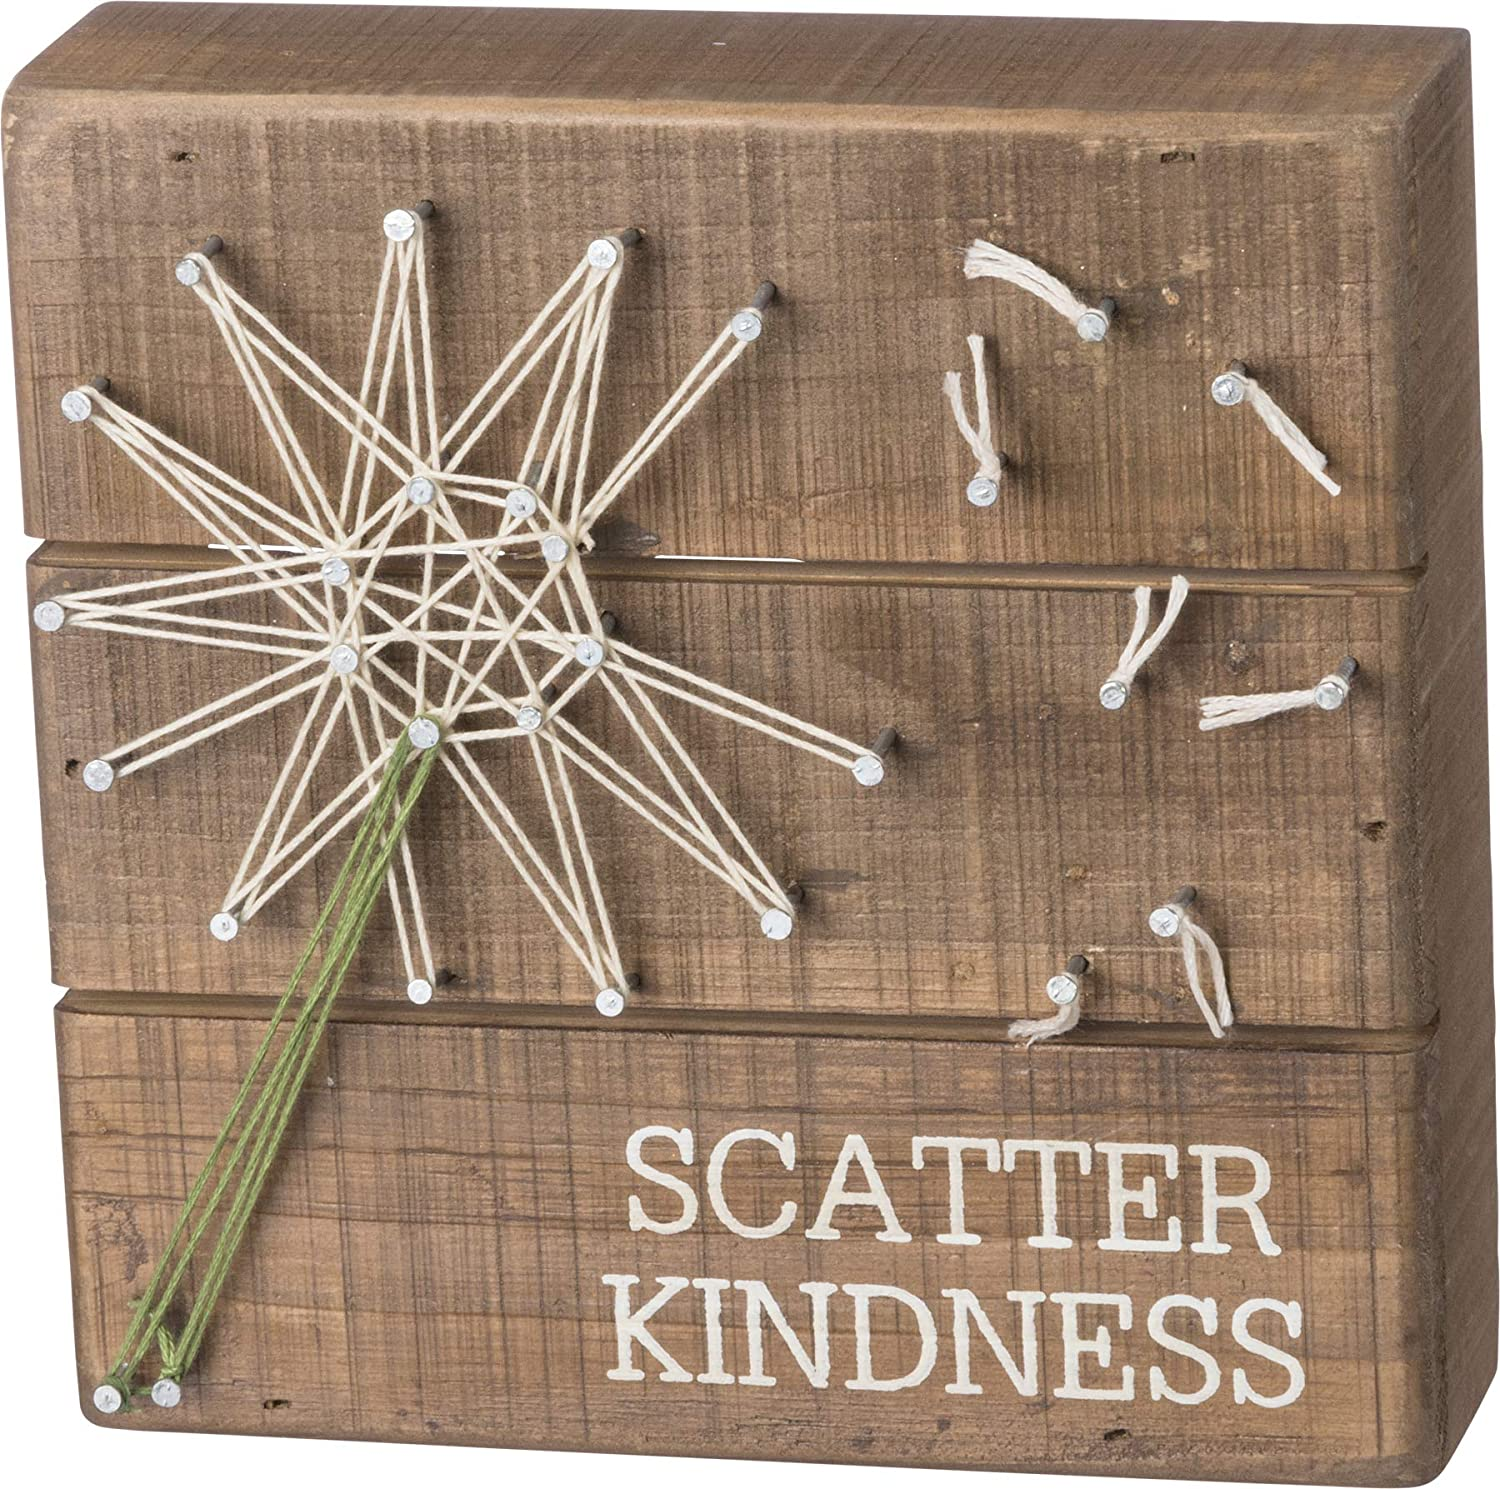 Primitives by Kathy String Art Wooden Box Sign, 6-Inches Square, Scatter Kindness